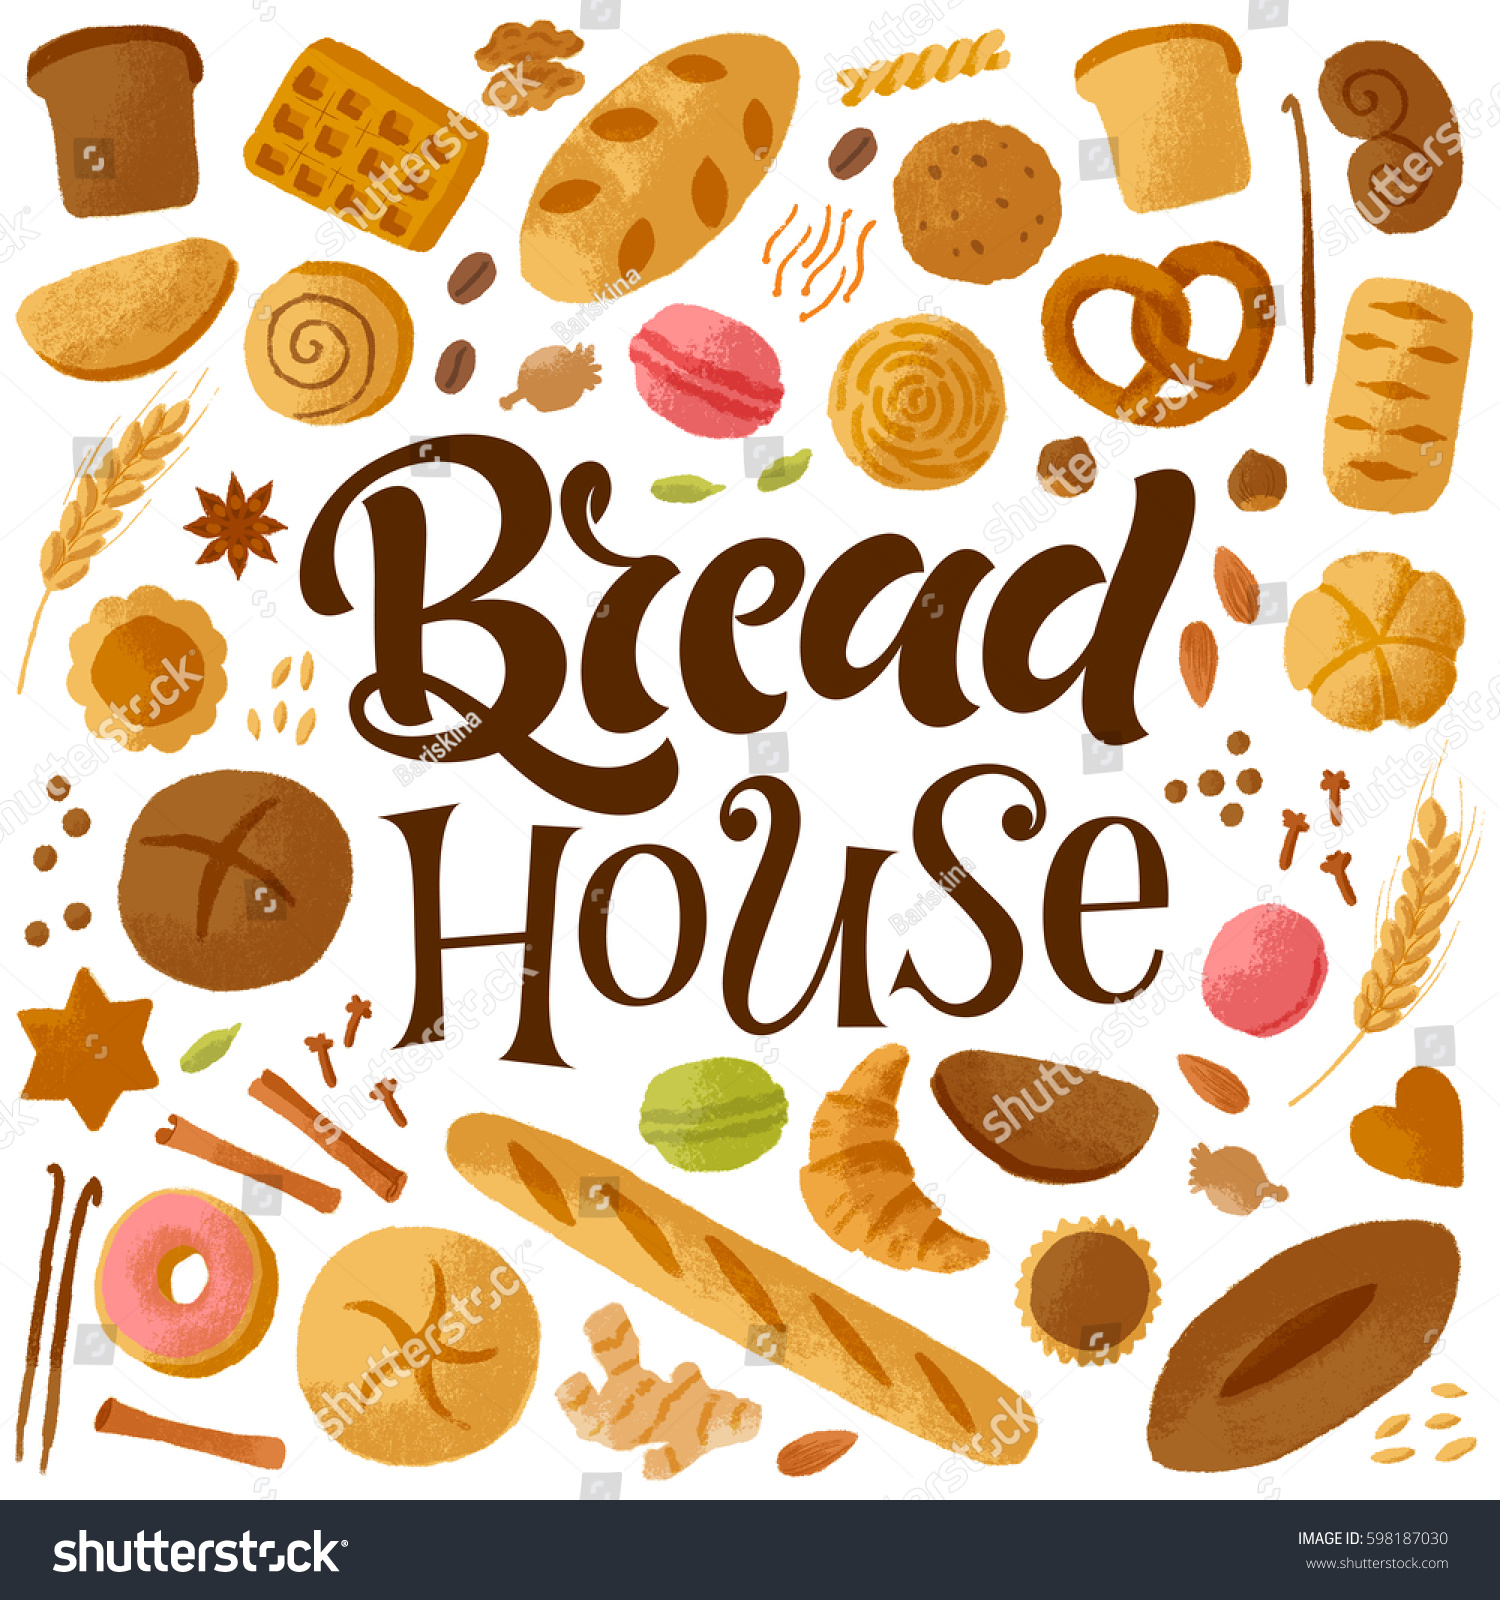 For restaurant pictures graphics illustrations clipart photos - Vector Handwritten Illustration Calligraphy And Graphic Elements For Bread House Bakery Hand